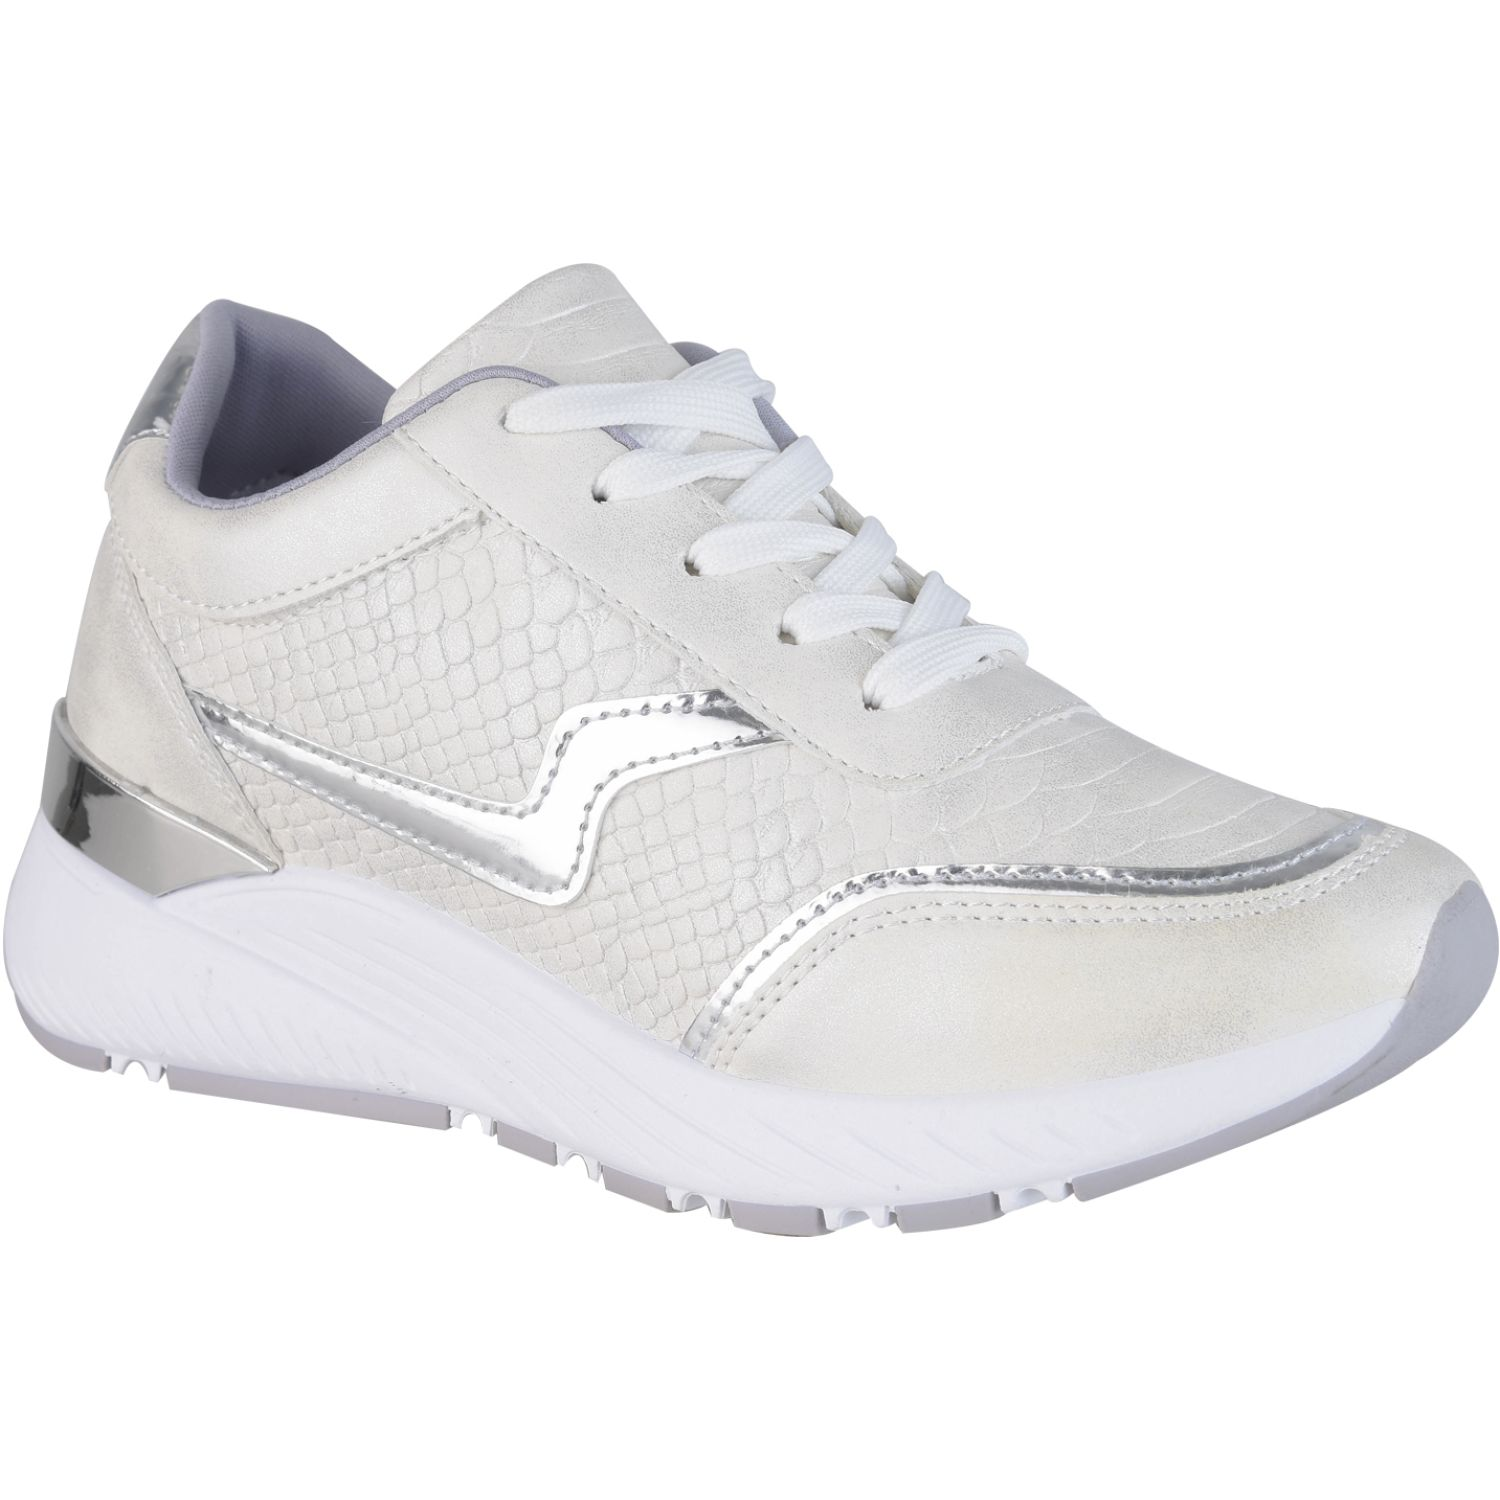 Platanitos Z 44 Blanco Zapatillas Fashion